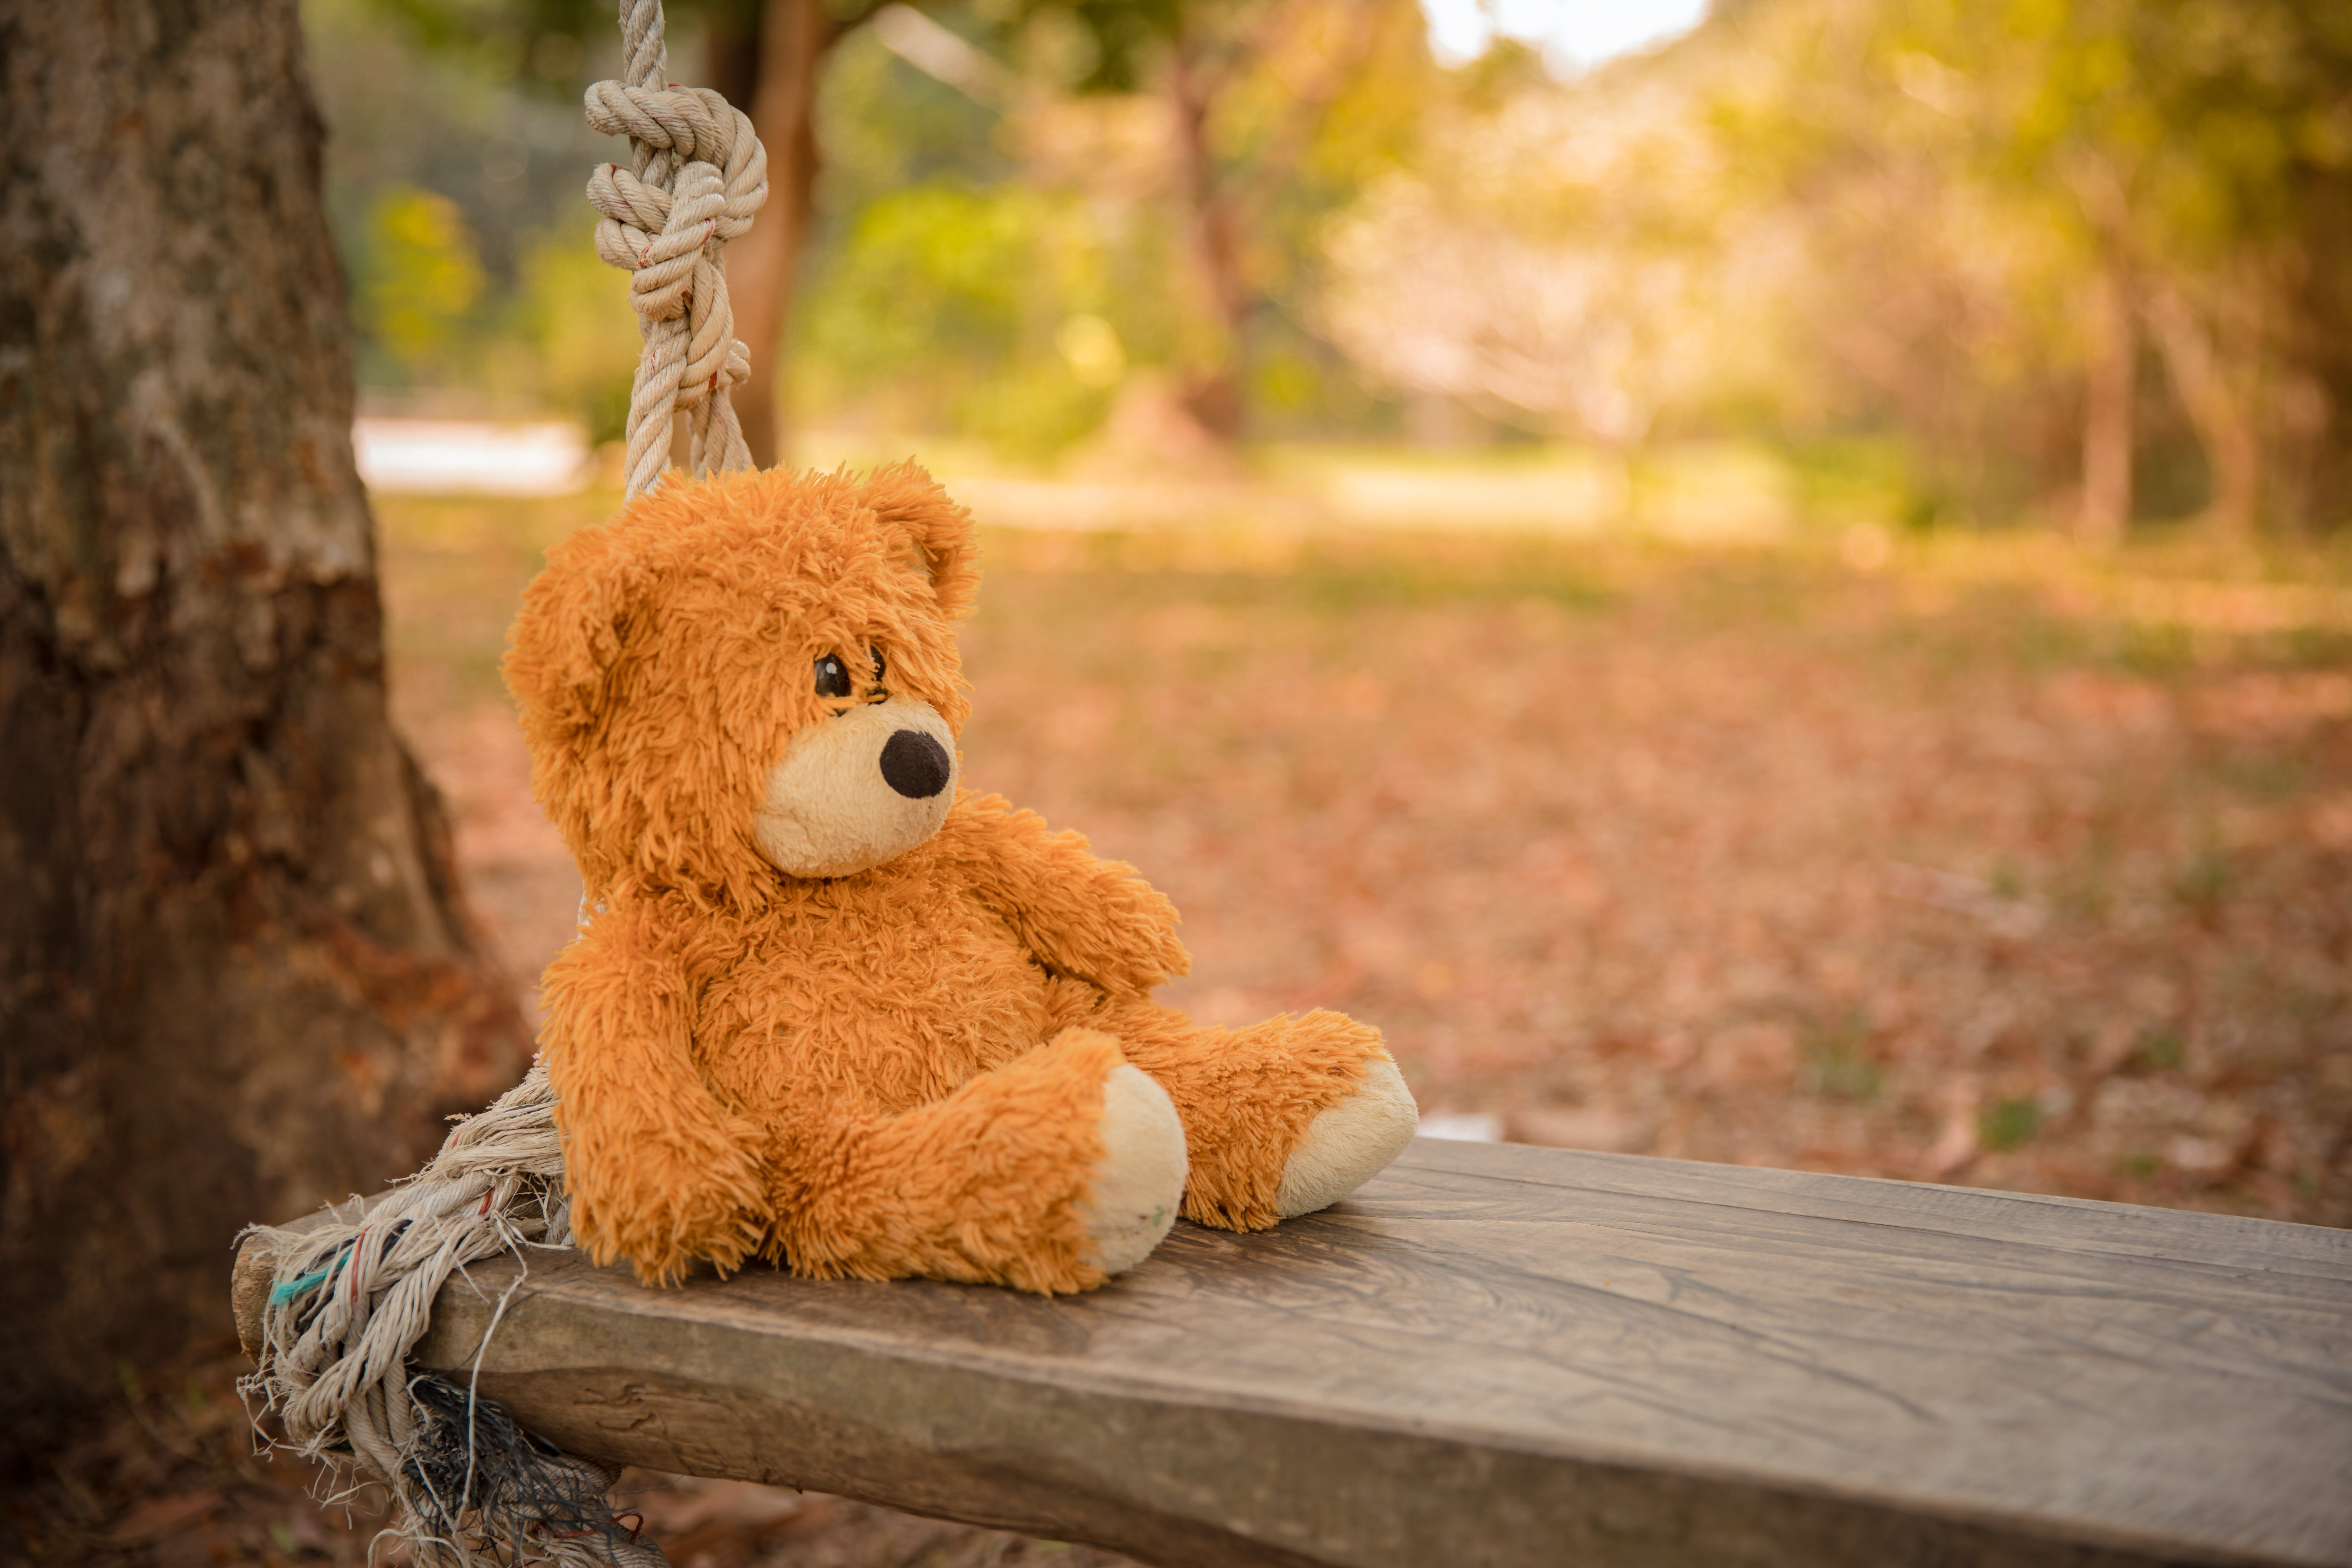 Close-Up Photography of Teddy Bear on Wooden Swing